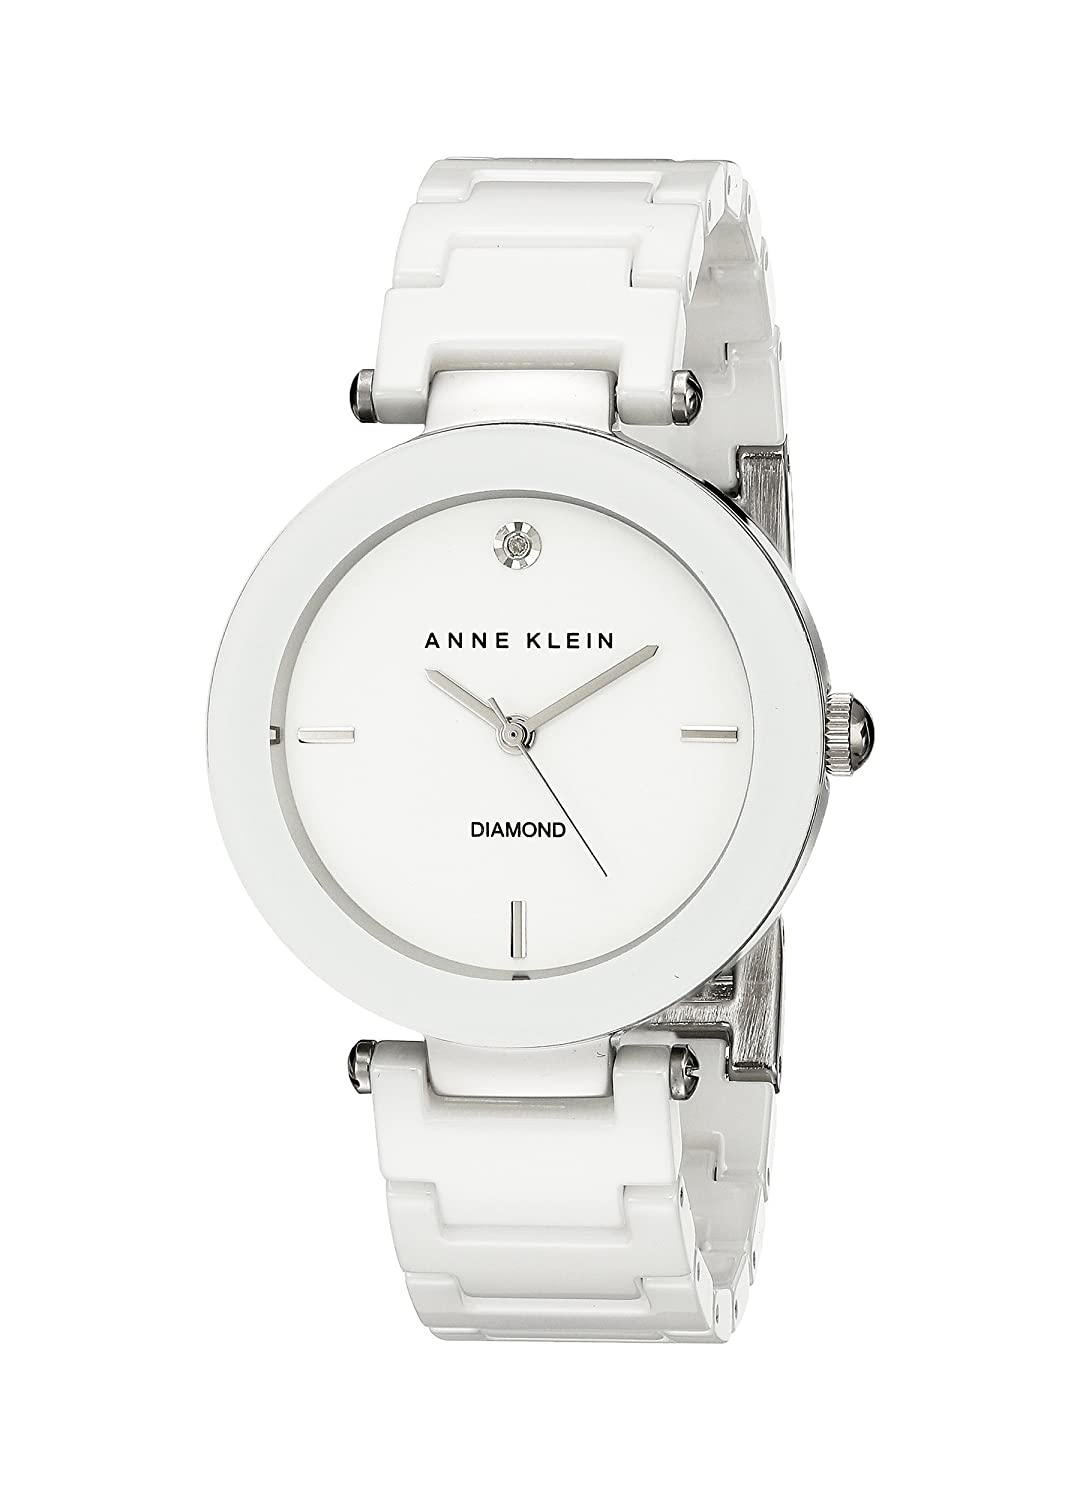 womens watches dknygender dkny round white stone set brand watch plastic dialanaloguse ladies band pin herdkny water resistantwhite